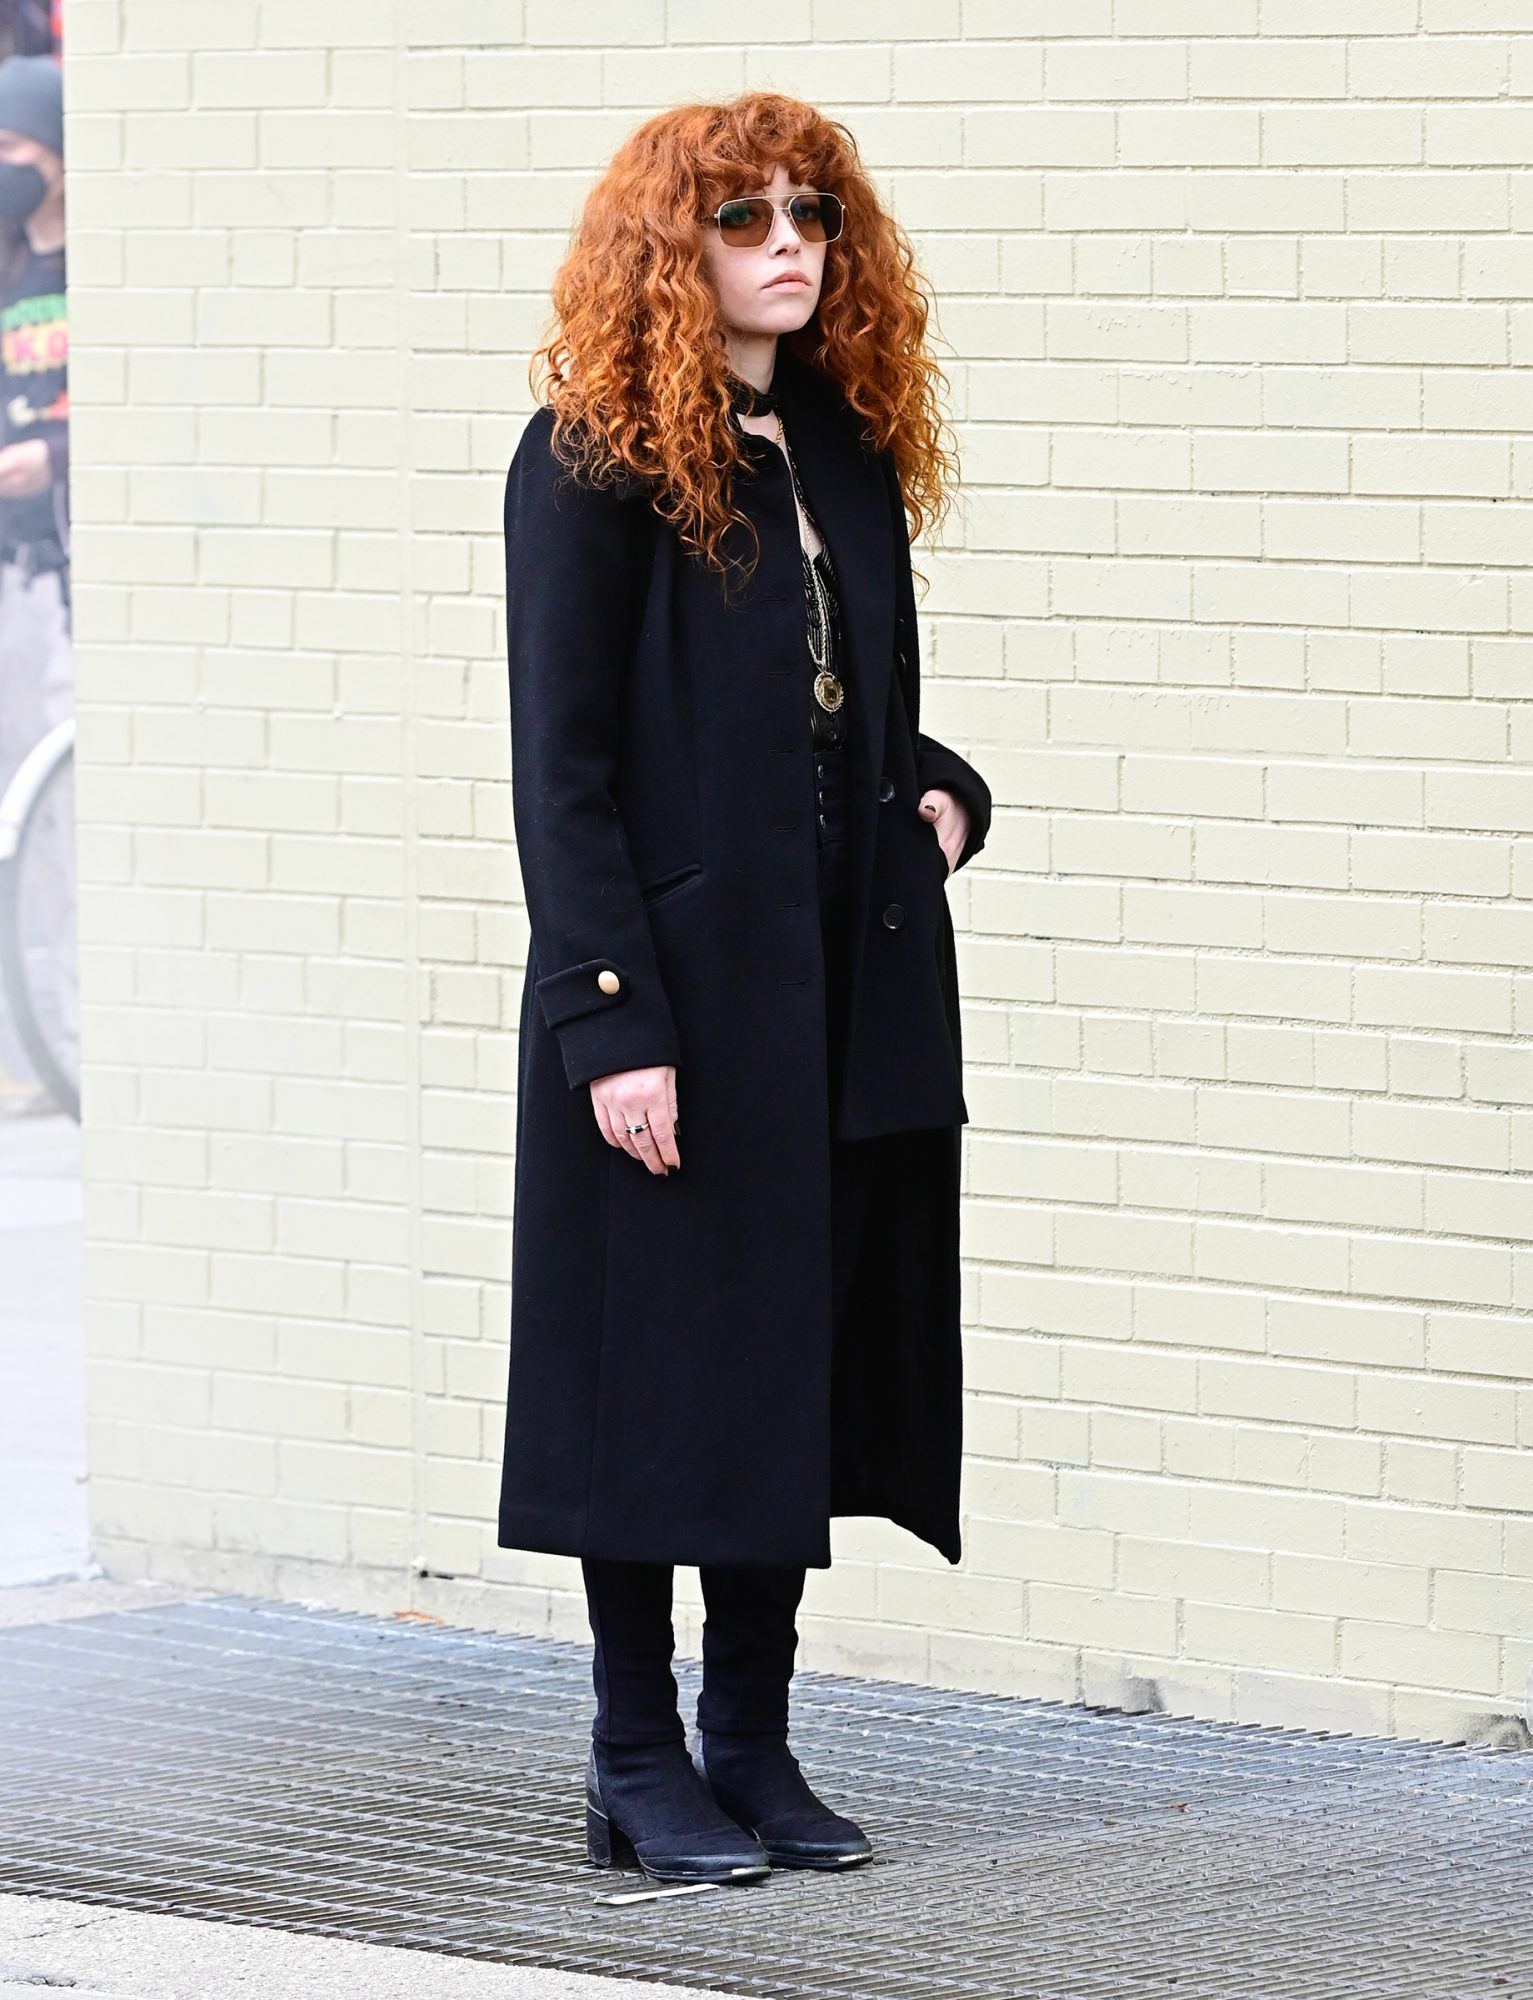 Natasha Lyonne is seen in SoHo on April 1, 2021 in New York City